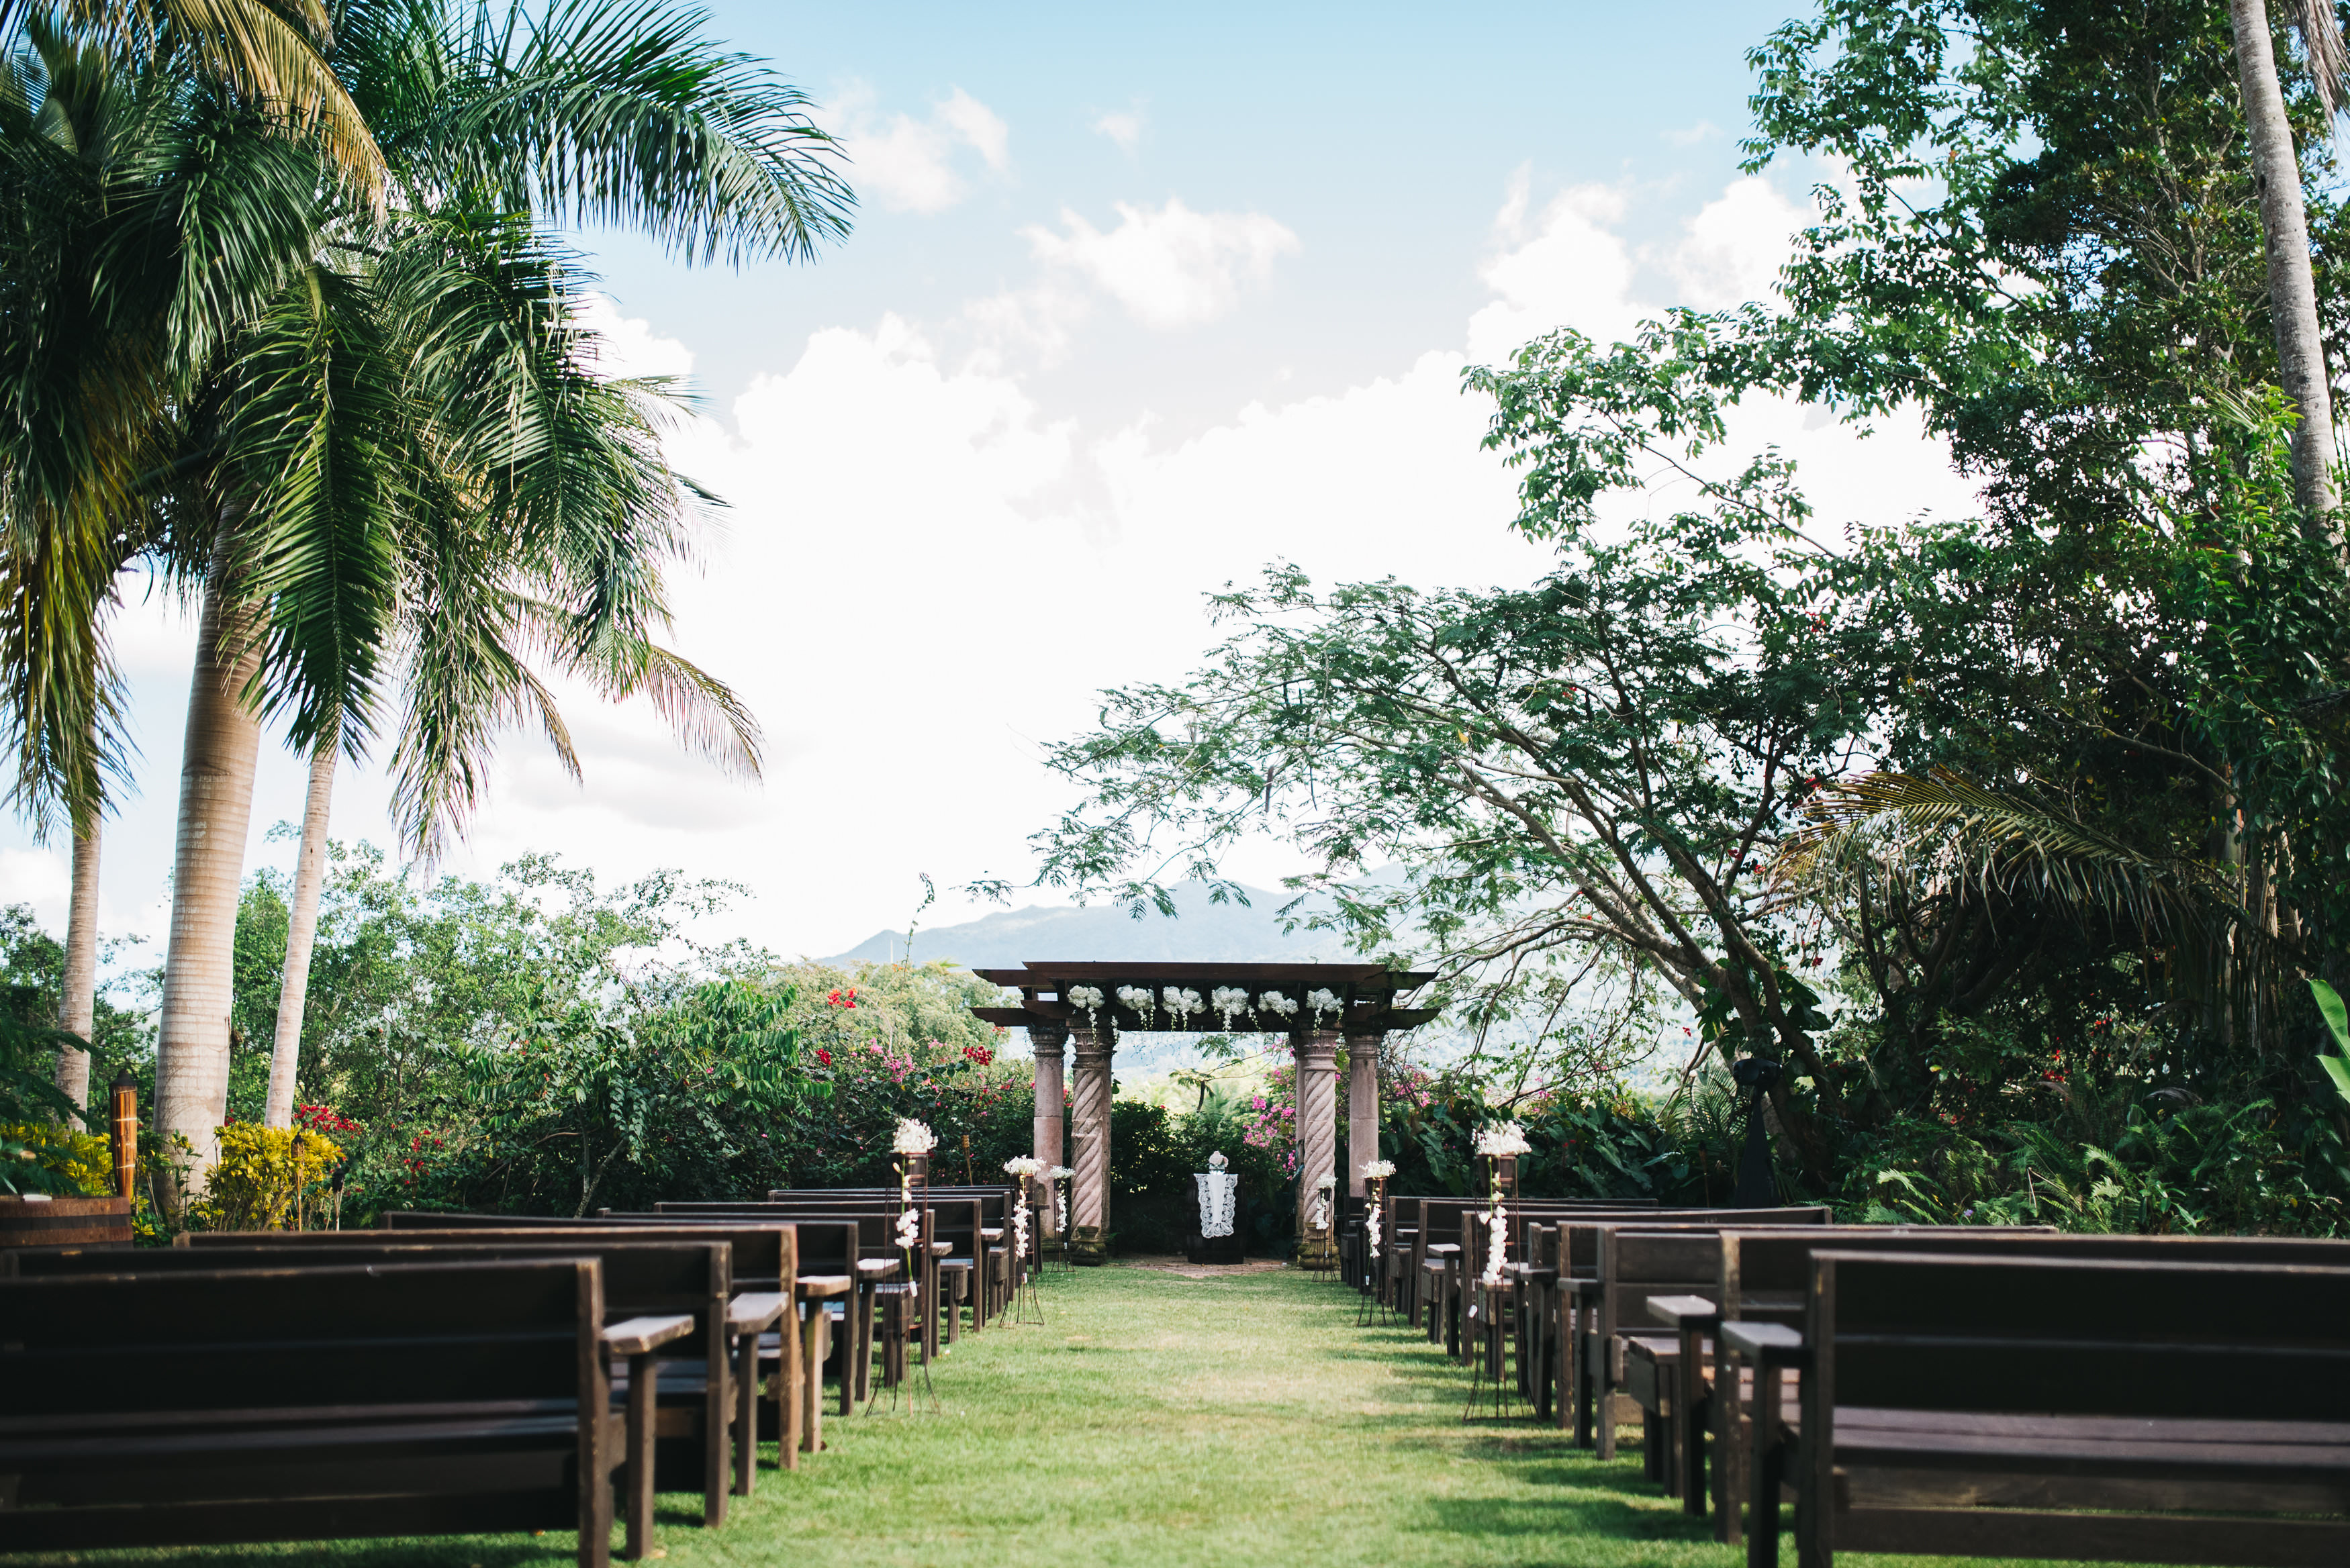 Rudy & Marta Photography - outdoor wedding ceremony setup with pews and pergola